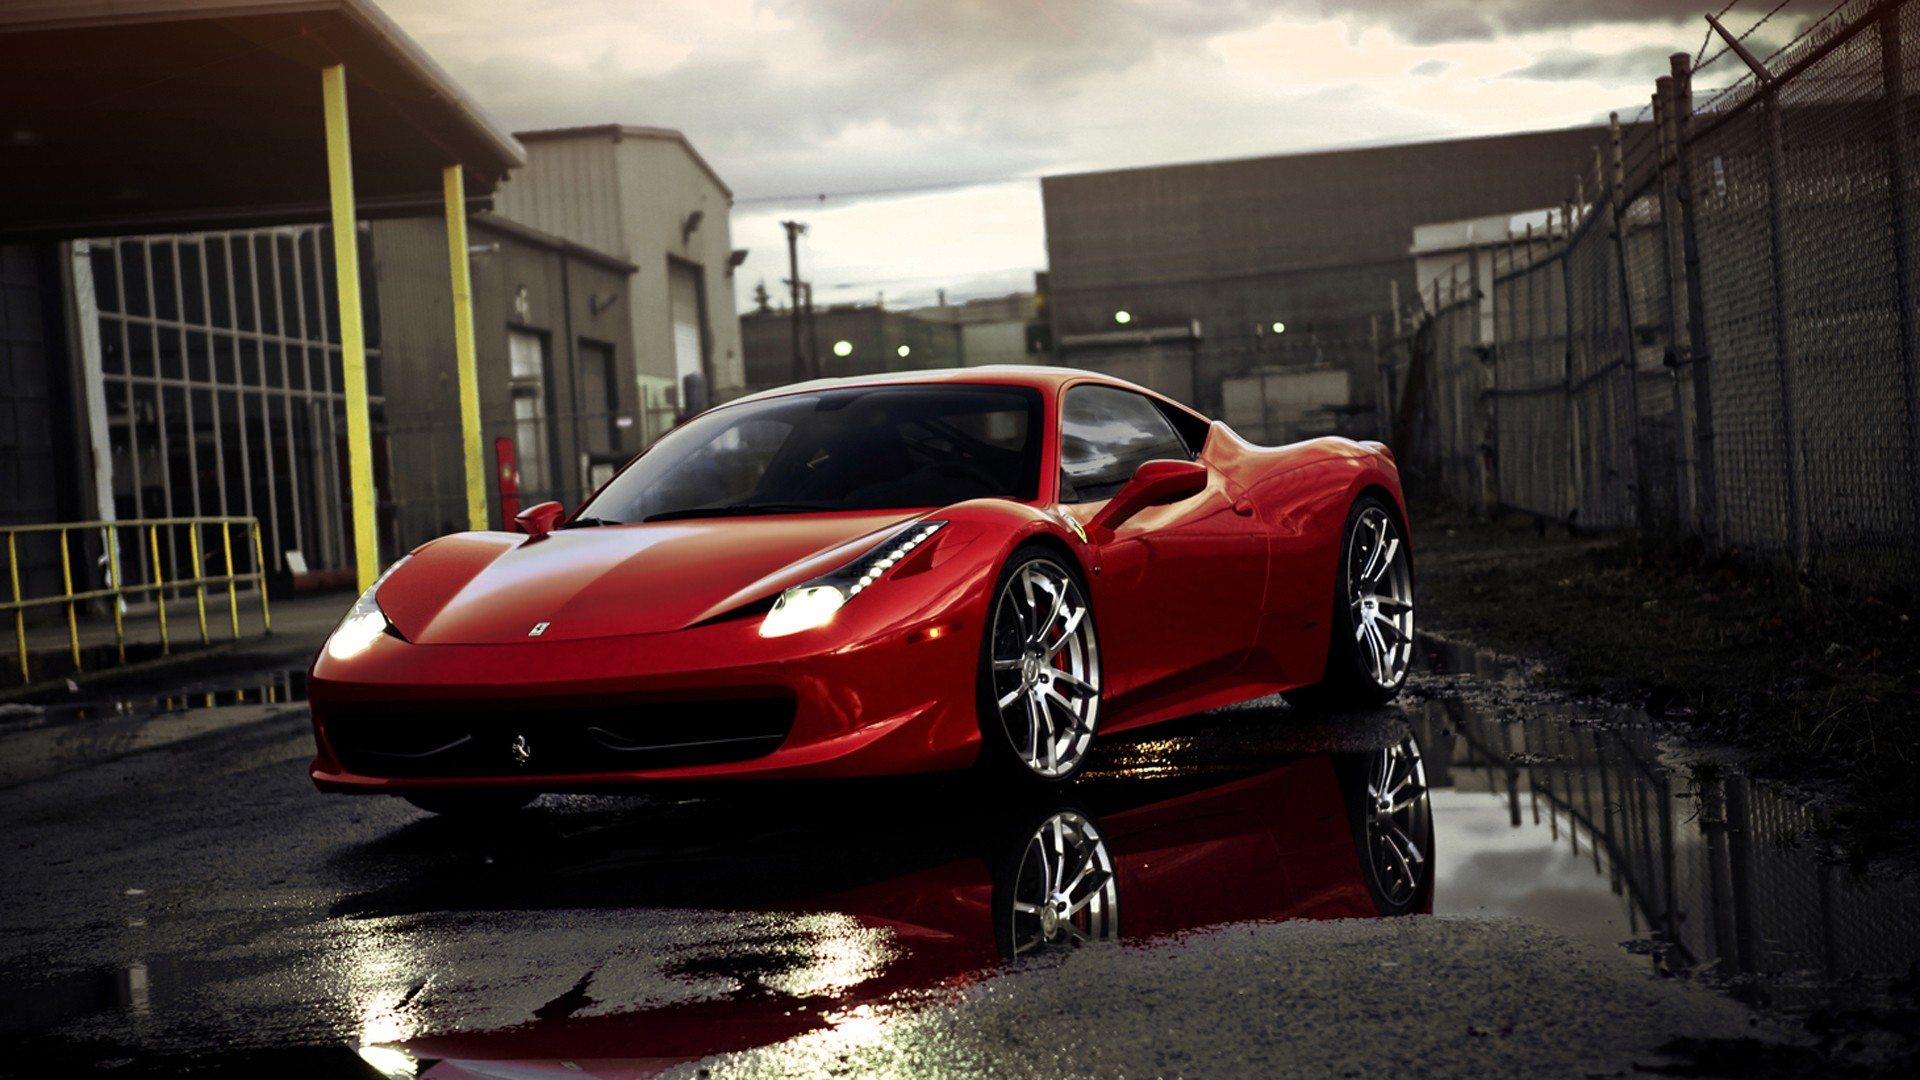 Download Wallpapers HD Best Red Ferrari Elegant New Car 1920x1080